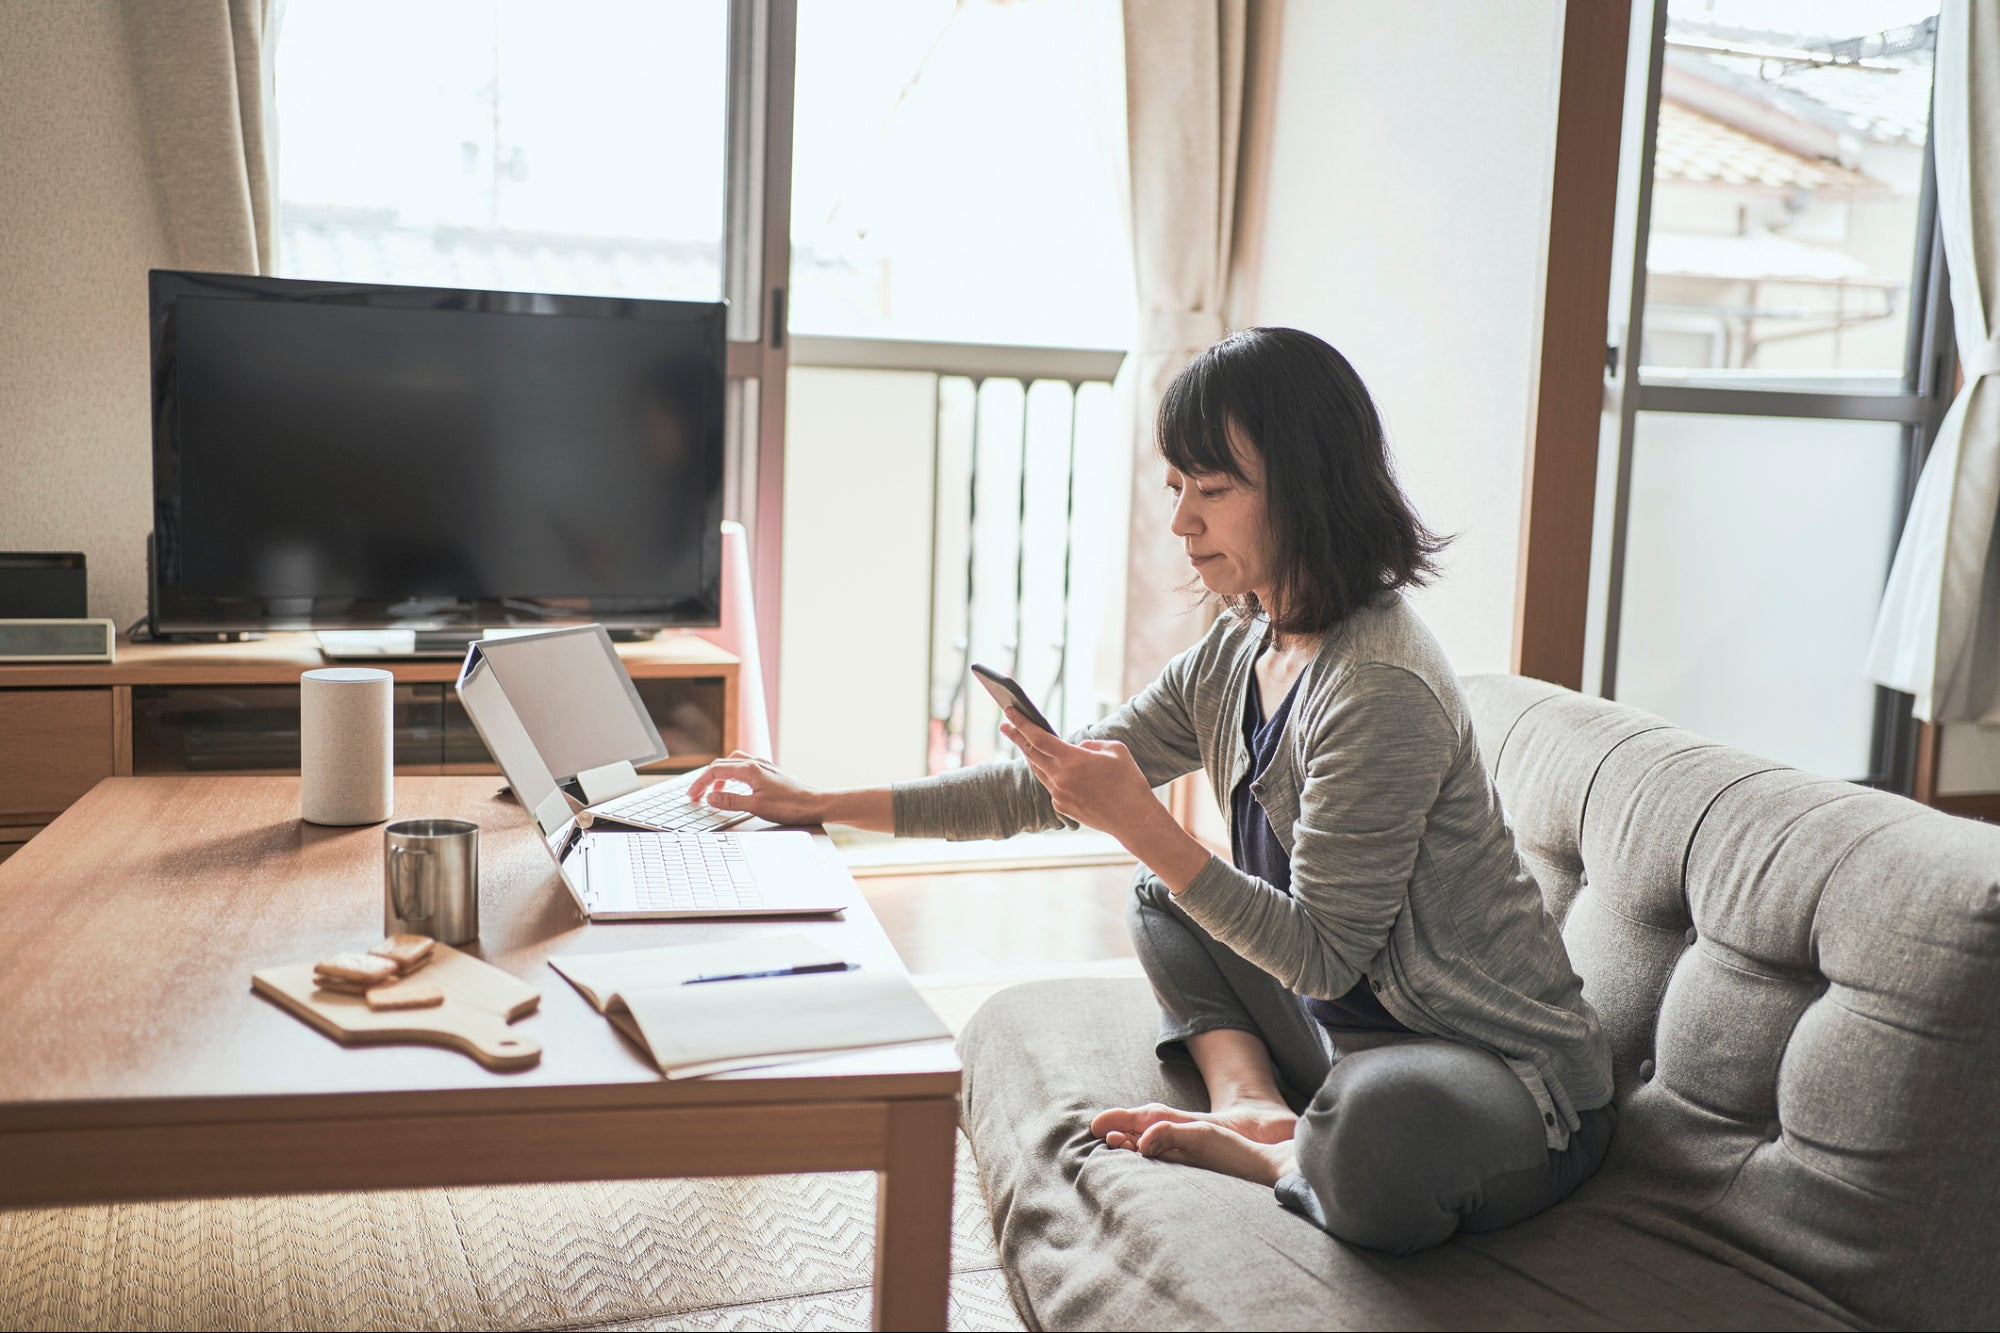 Ways To Improve Your Work From Home Routine